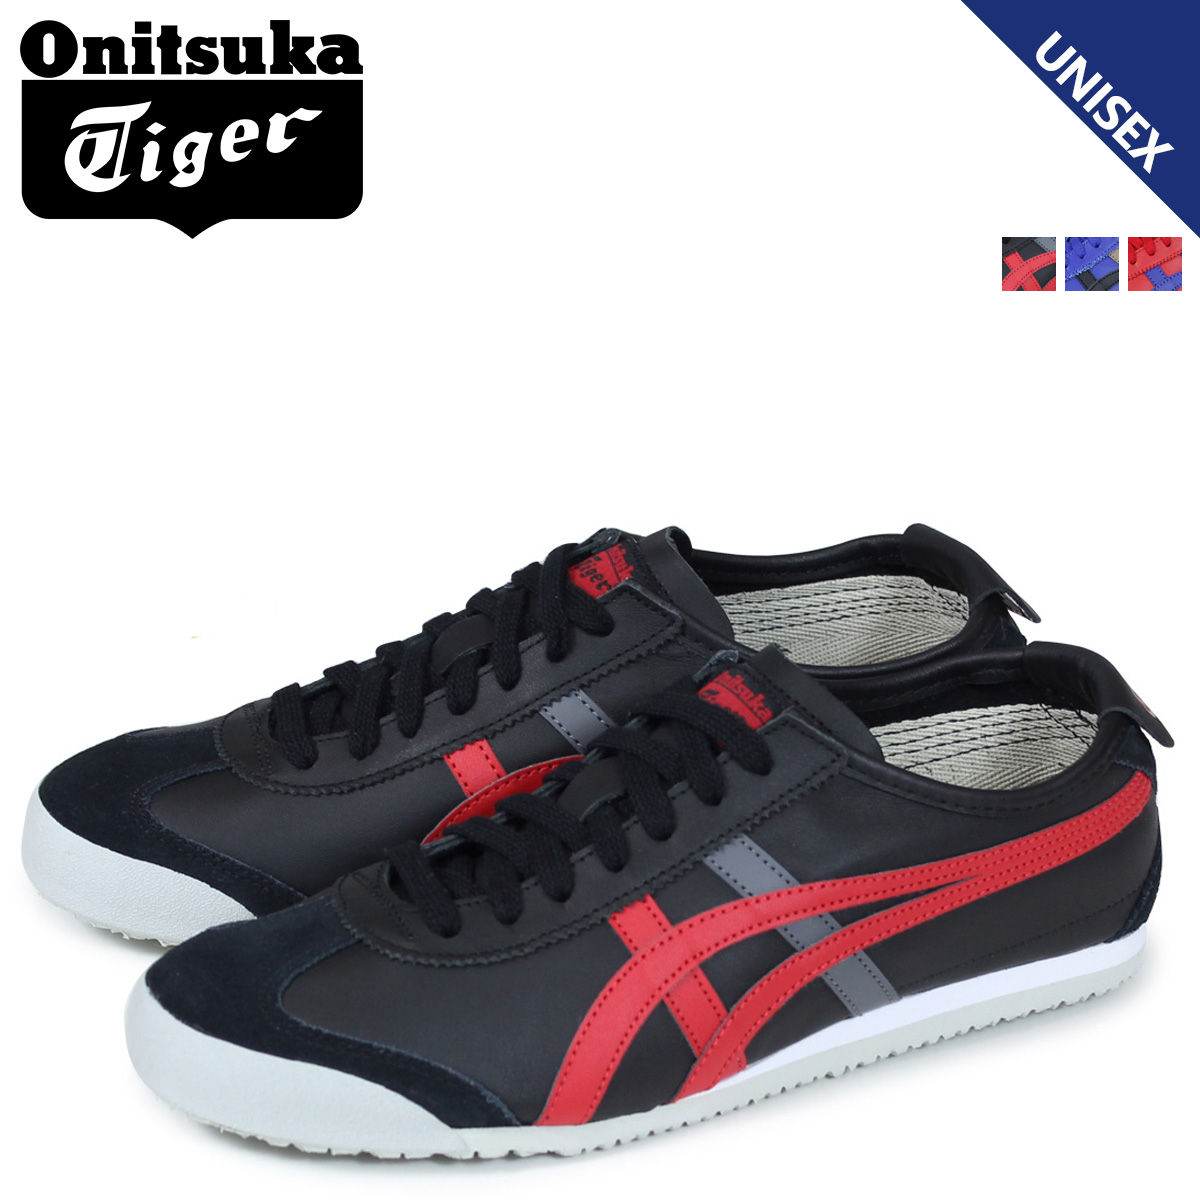 e4877b486e28 ... promo code for onitsuka tiger mexico 66 onitsuka tiger asics men gap  dis sneakers asics mexico